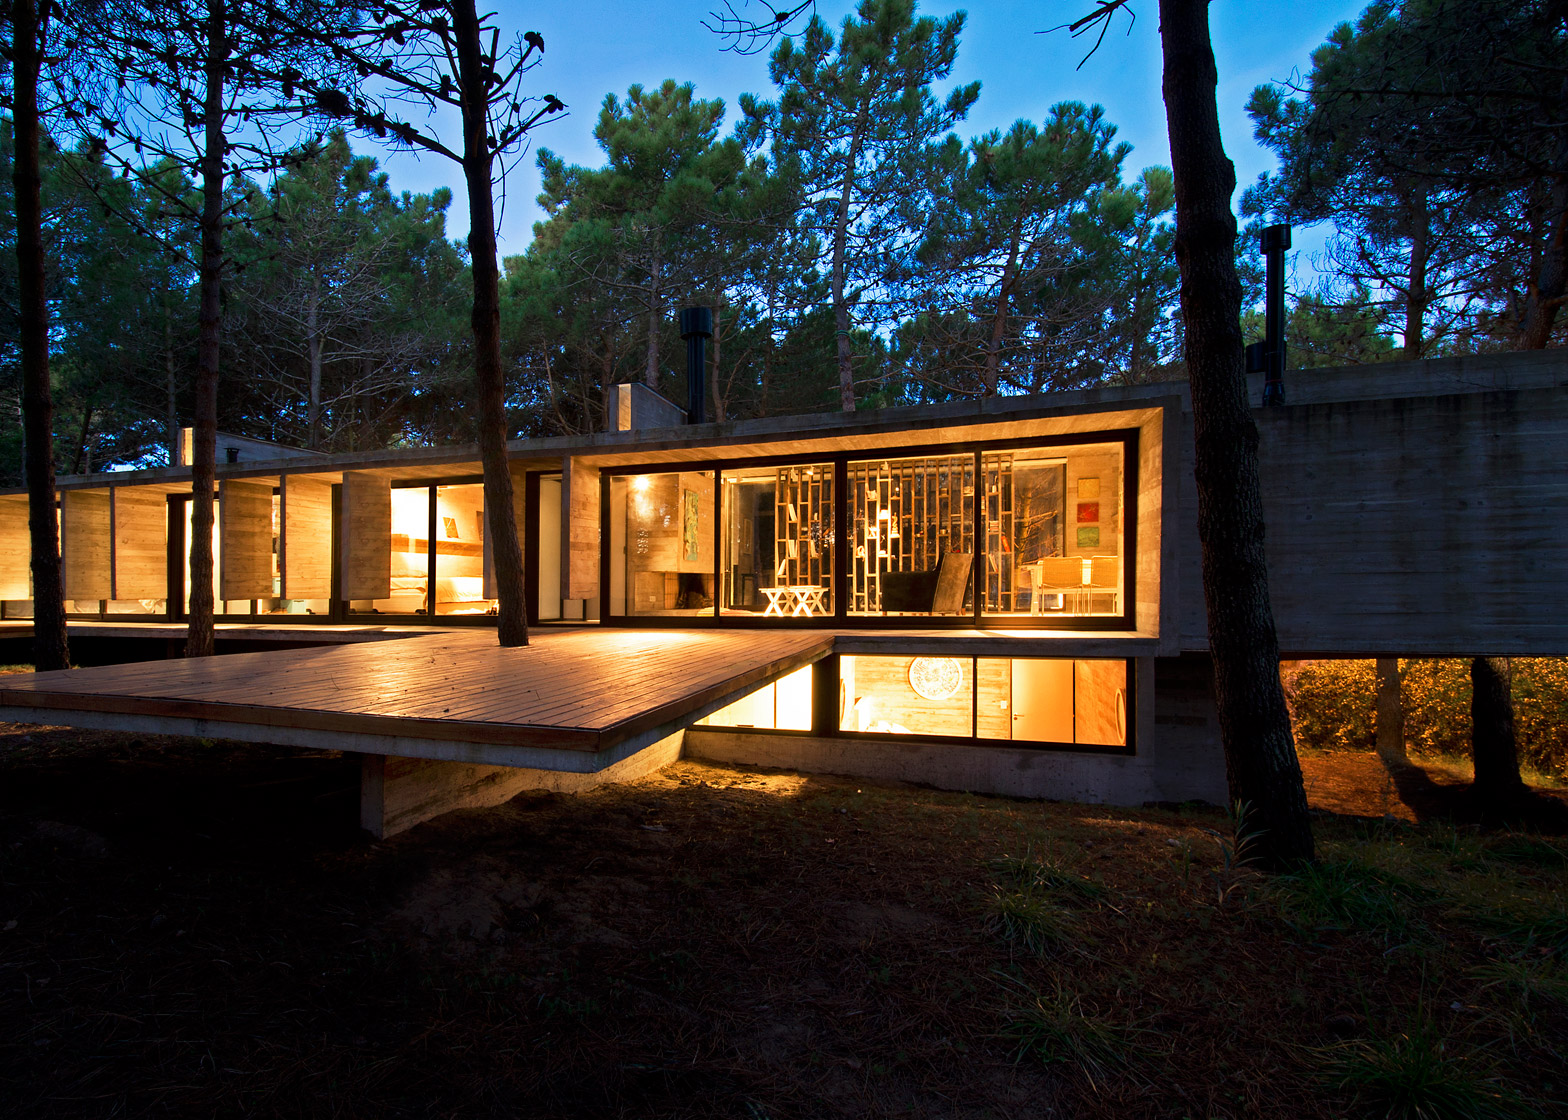 Valeria house by Liciano Kruk and Maria Victoria Besonias which is built in a forest near Buenos Aries